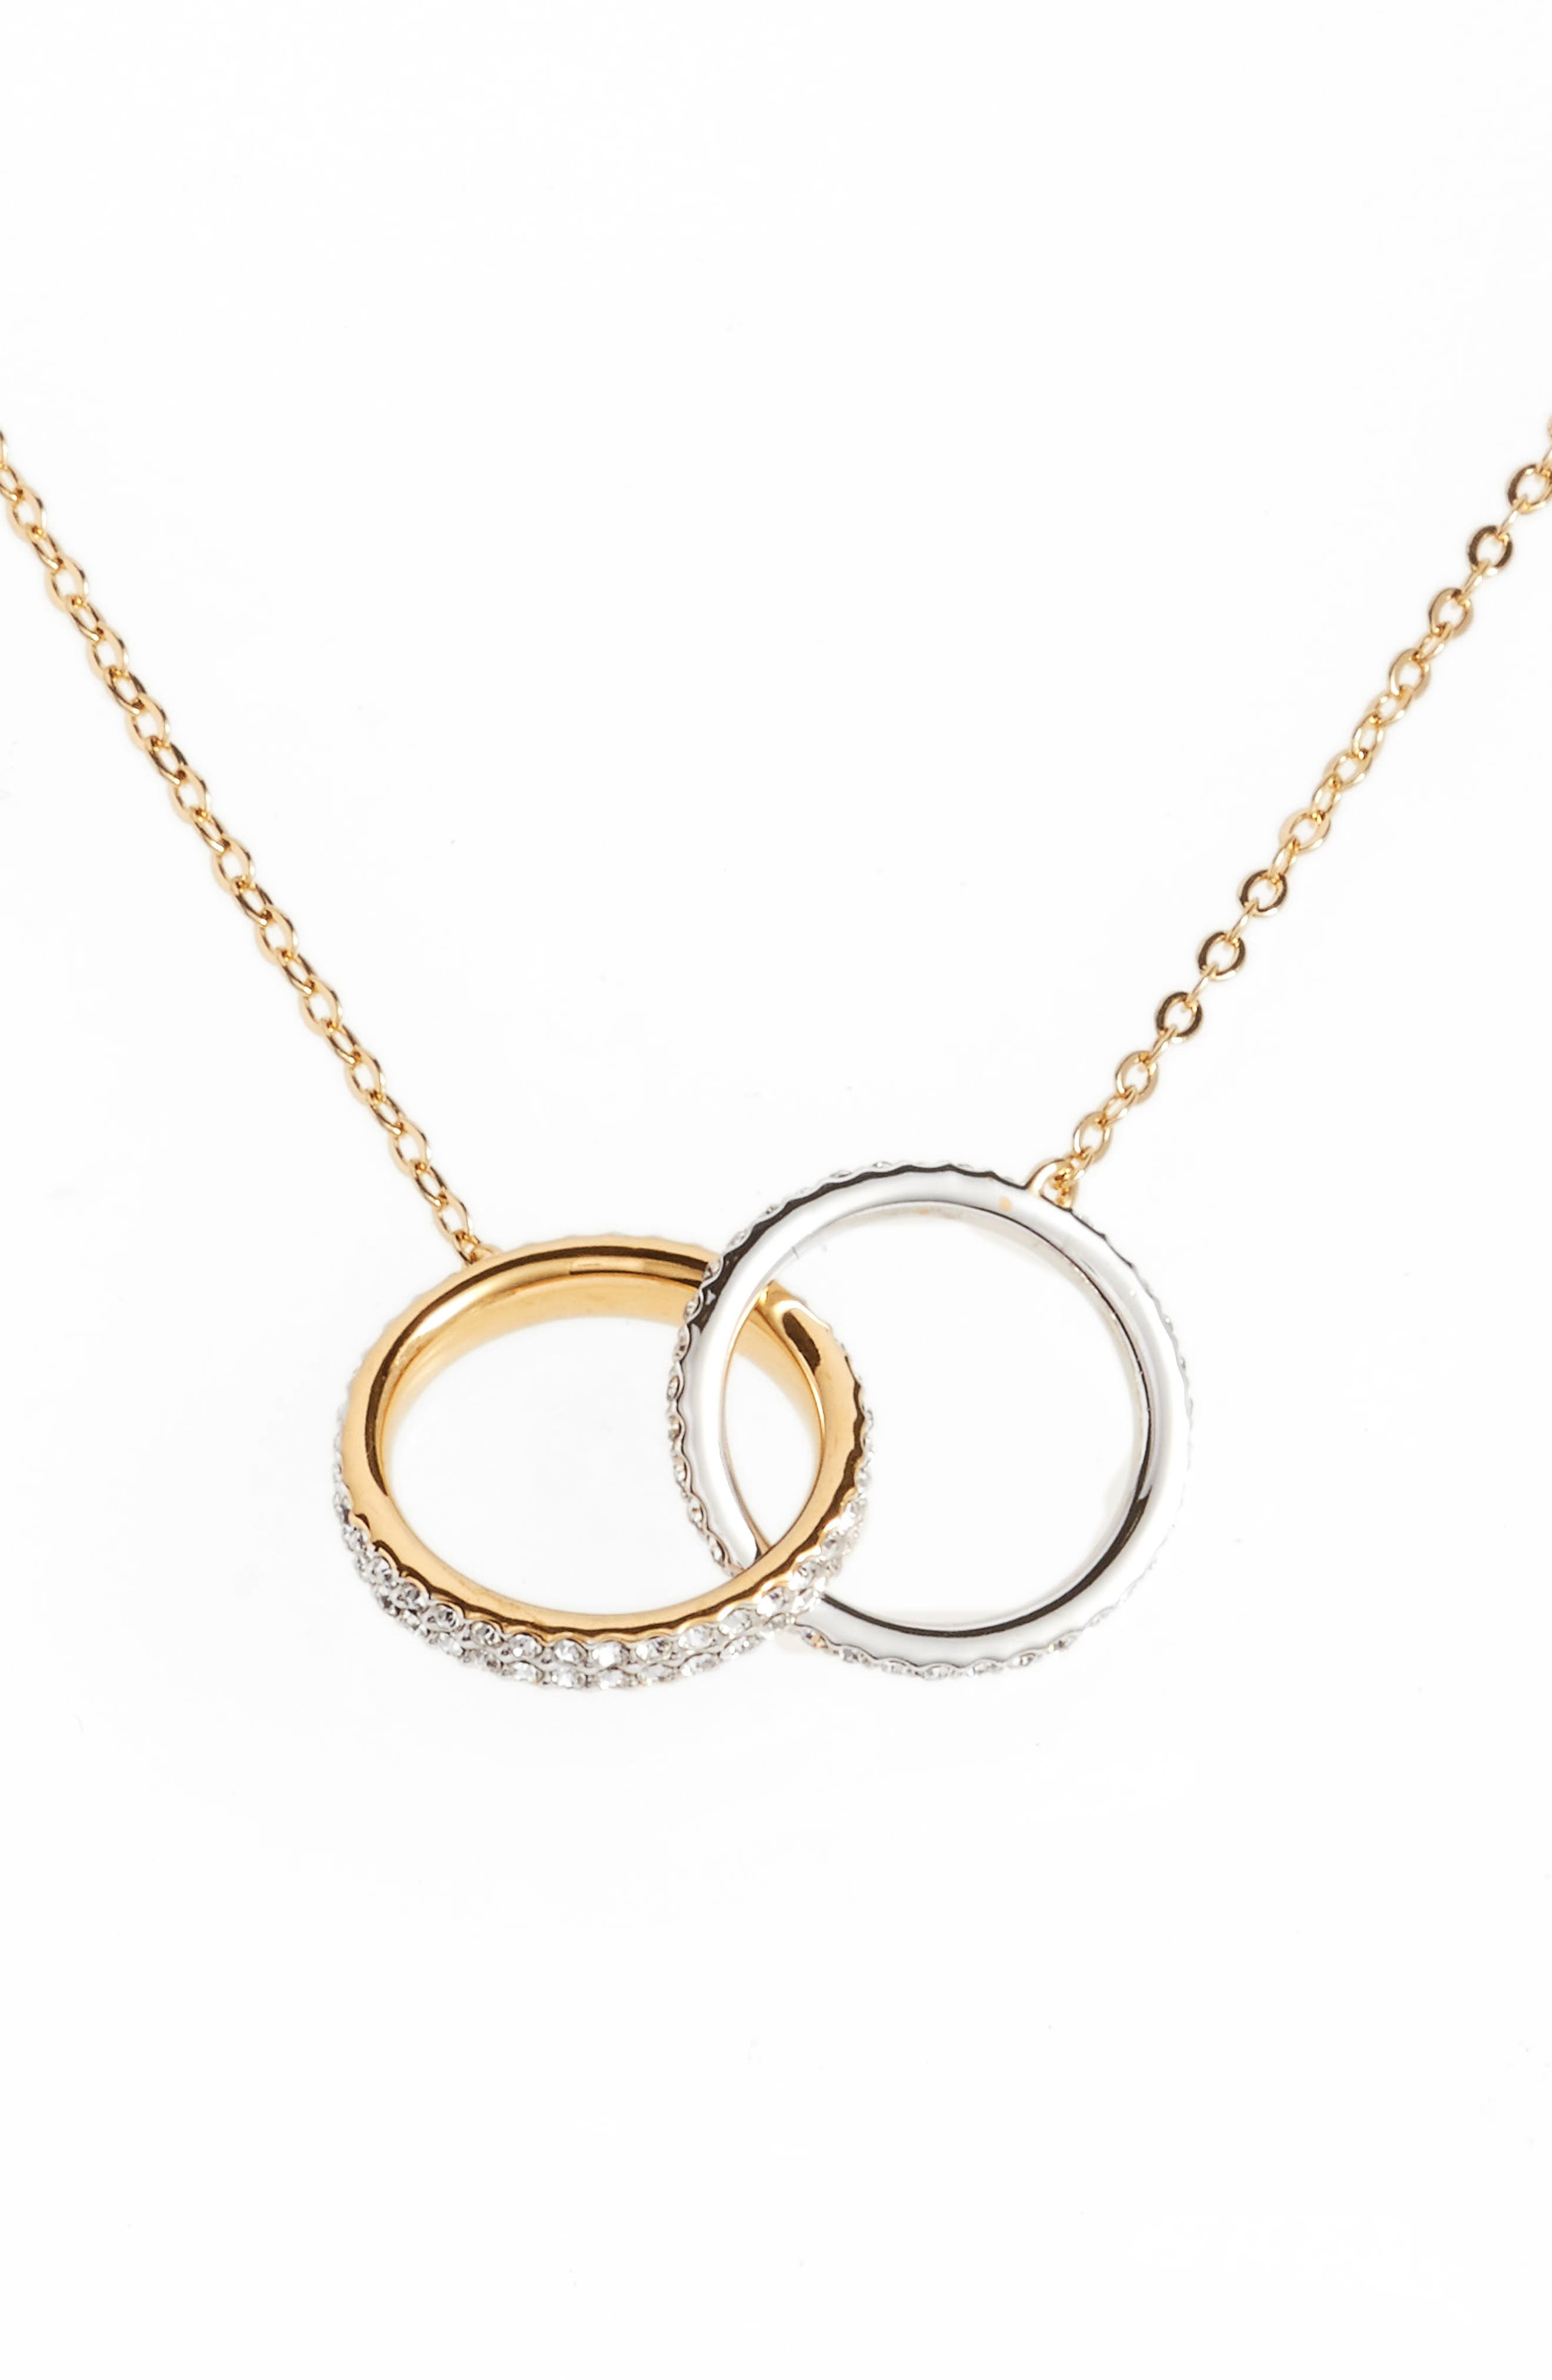 Trinity Double Link Pendant Necklace,                             Main thumbnail 1, color,                             GOLD / SILVER